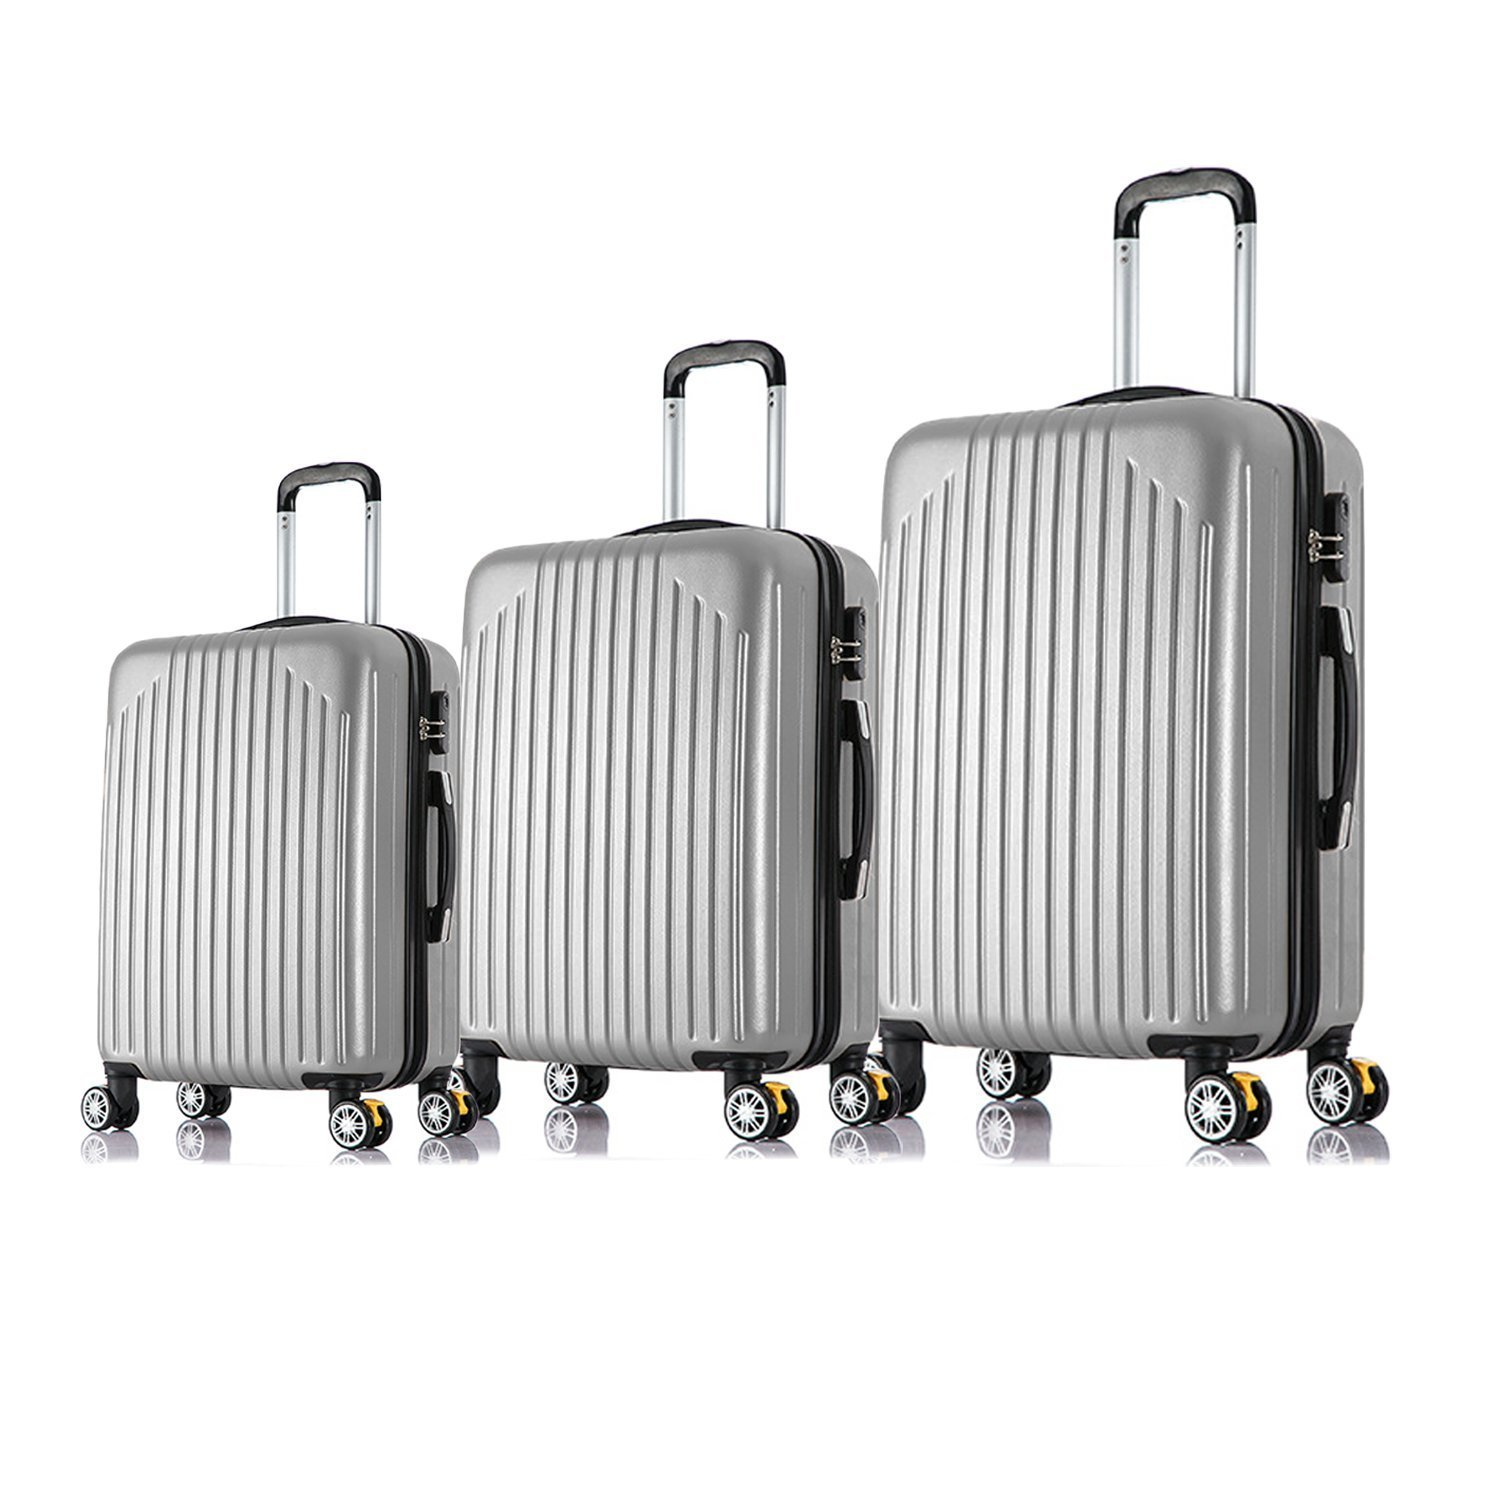 Magshion Unisex-Adult Carry On Luggage Travel Bag, Spinner Suitcase, Silver, 3 Piece